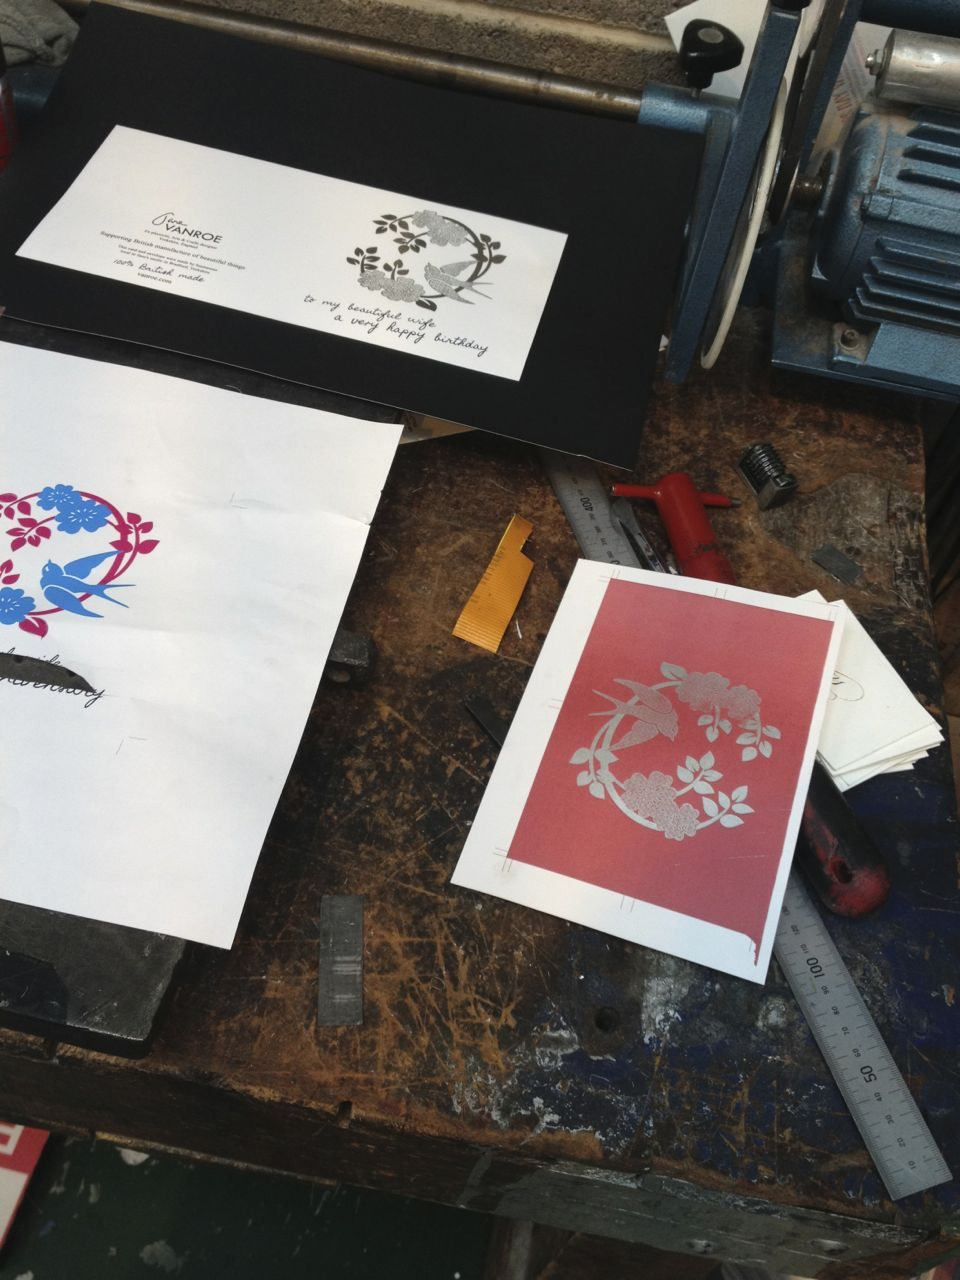 The Rose & Swallow card on the print workshop table, laying out print and testing foil.